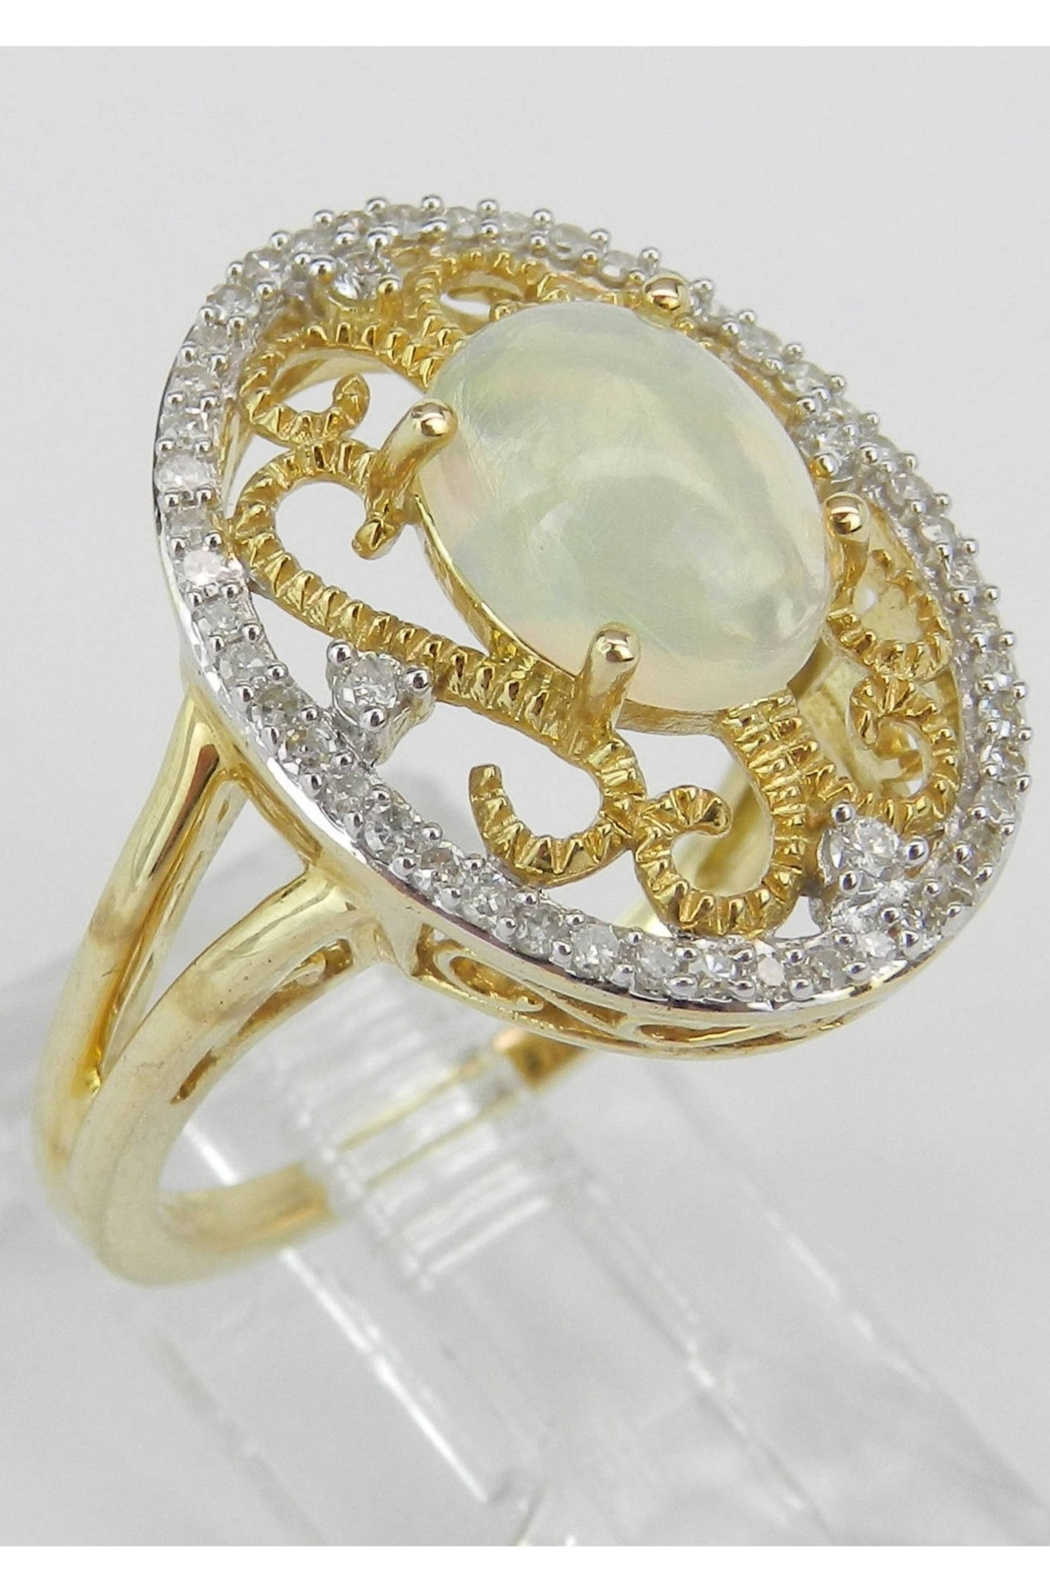 Margolin & Co Yellow Gold Diamond and Opal Ring, Diamond Halo Ring, Opal Filigree Cocktail Ring, Size 7, October Gemstone Ring - Front Full Image